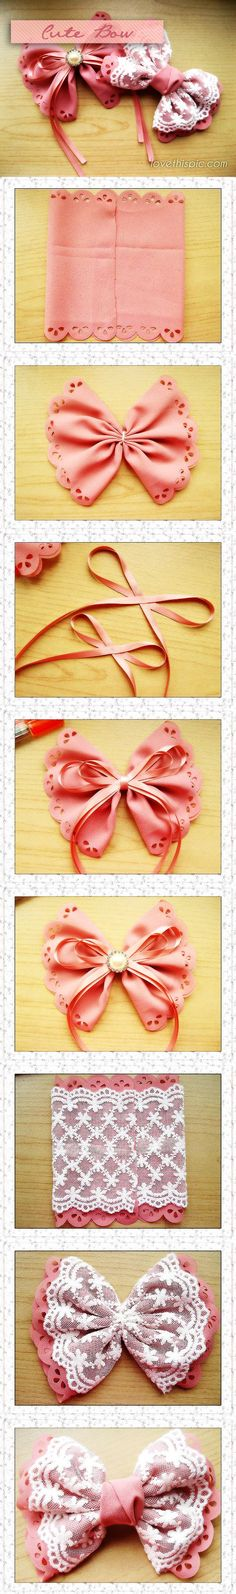 DIY Cute Bow Pictures, Photos, and Images for Facebook, Tumblr, Pinterest, and Twitter